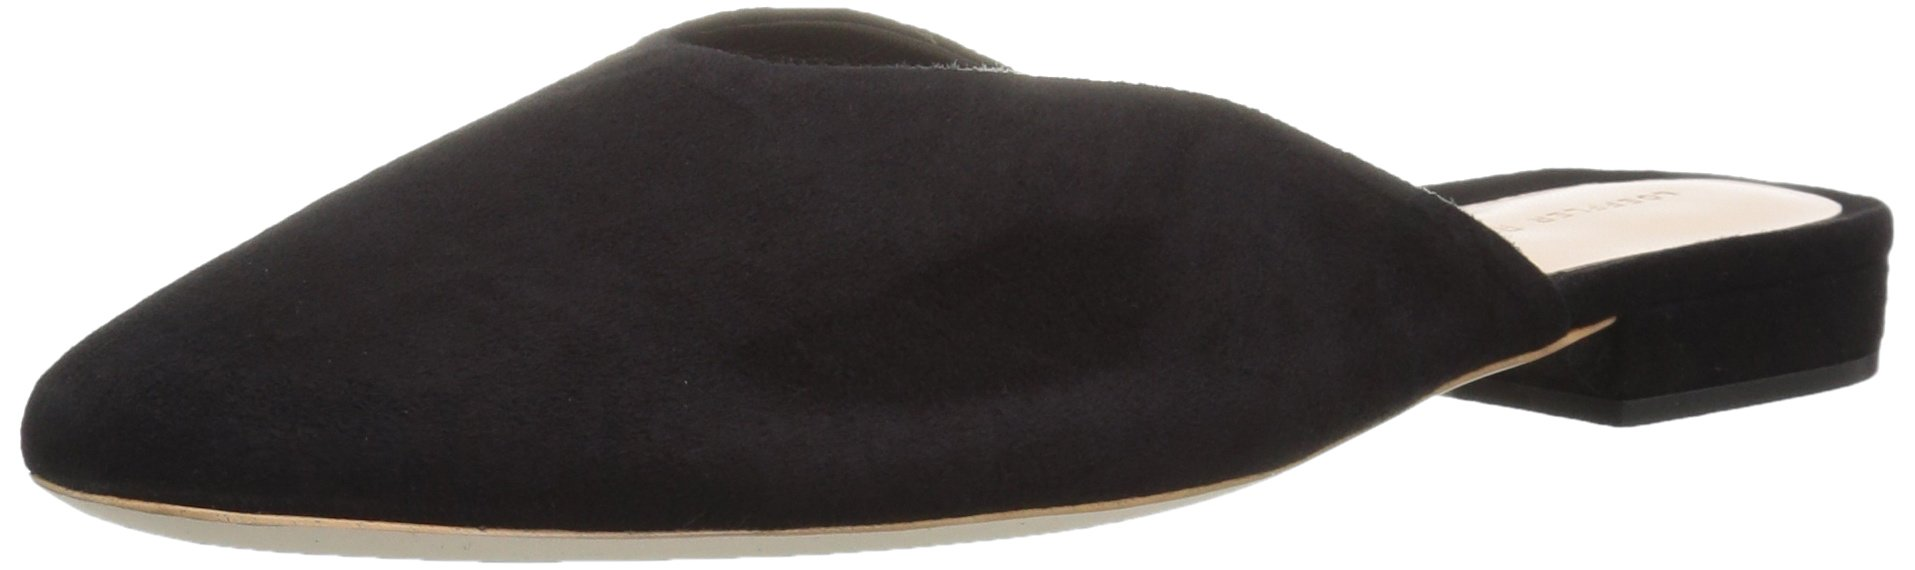 LOEFFLER RANDALL Women's Quin (Kid Suede) Driving Style Loafer, Black, 8 M US